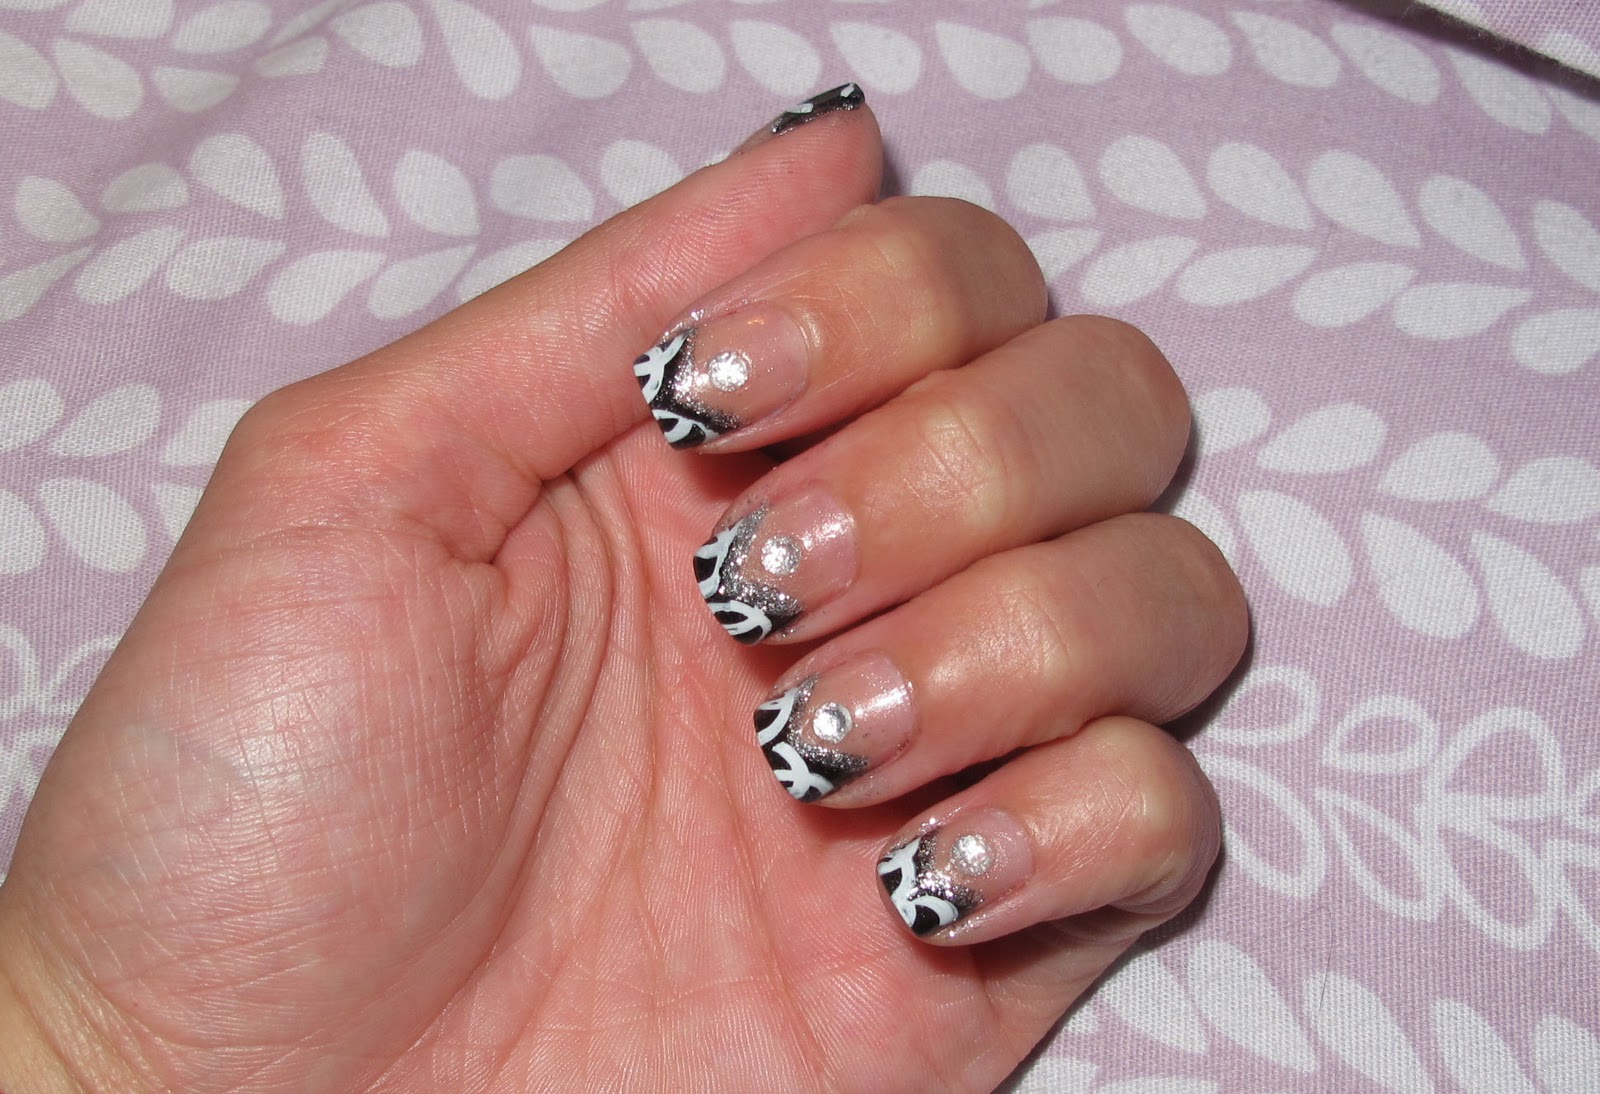 Nail Designs: French Manicure Design